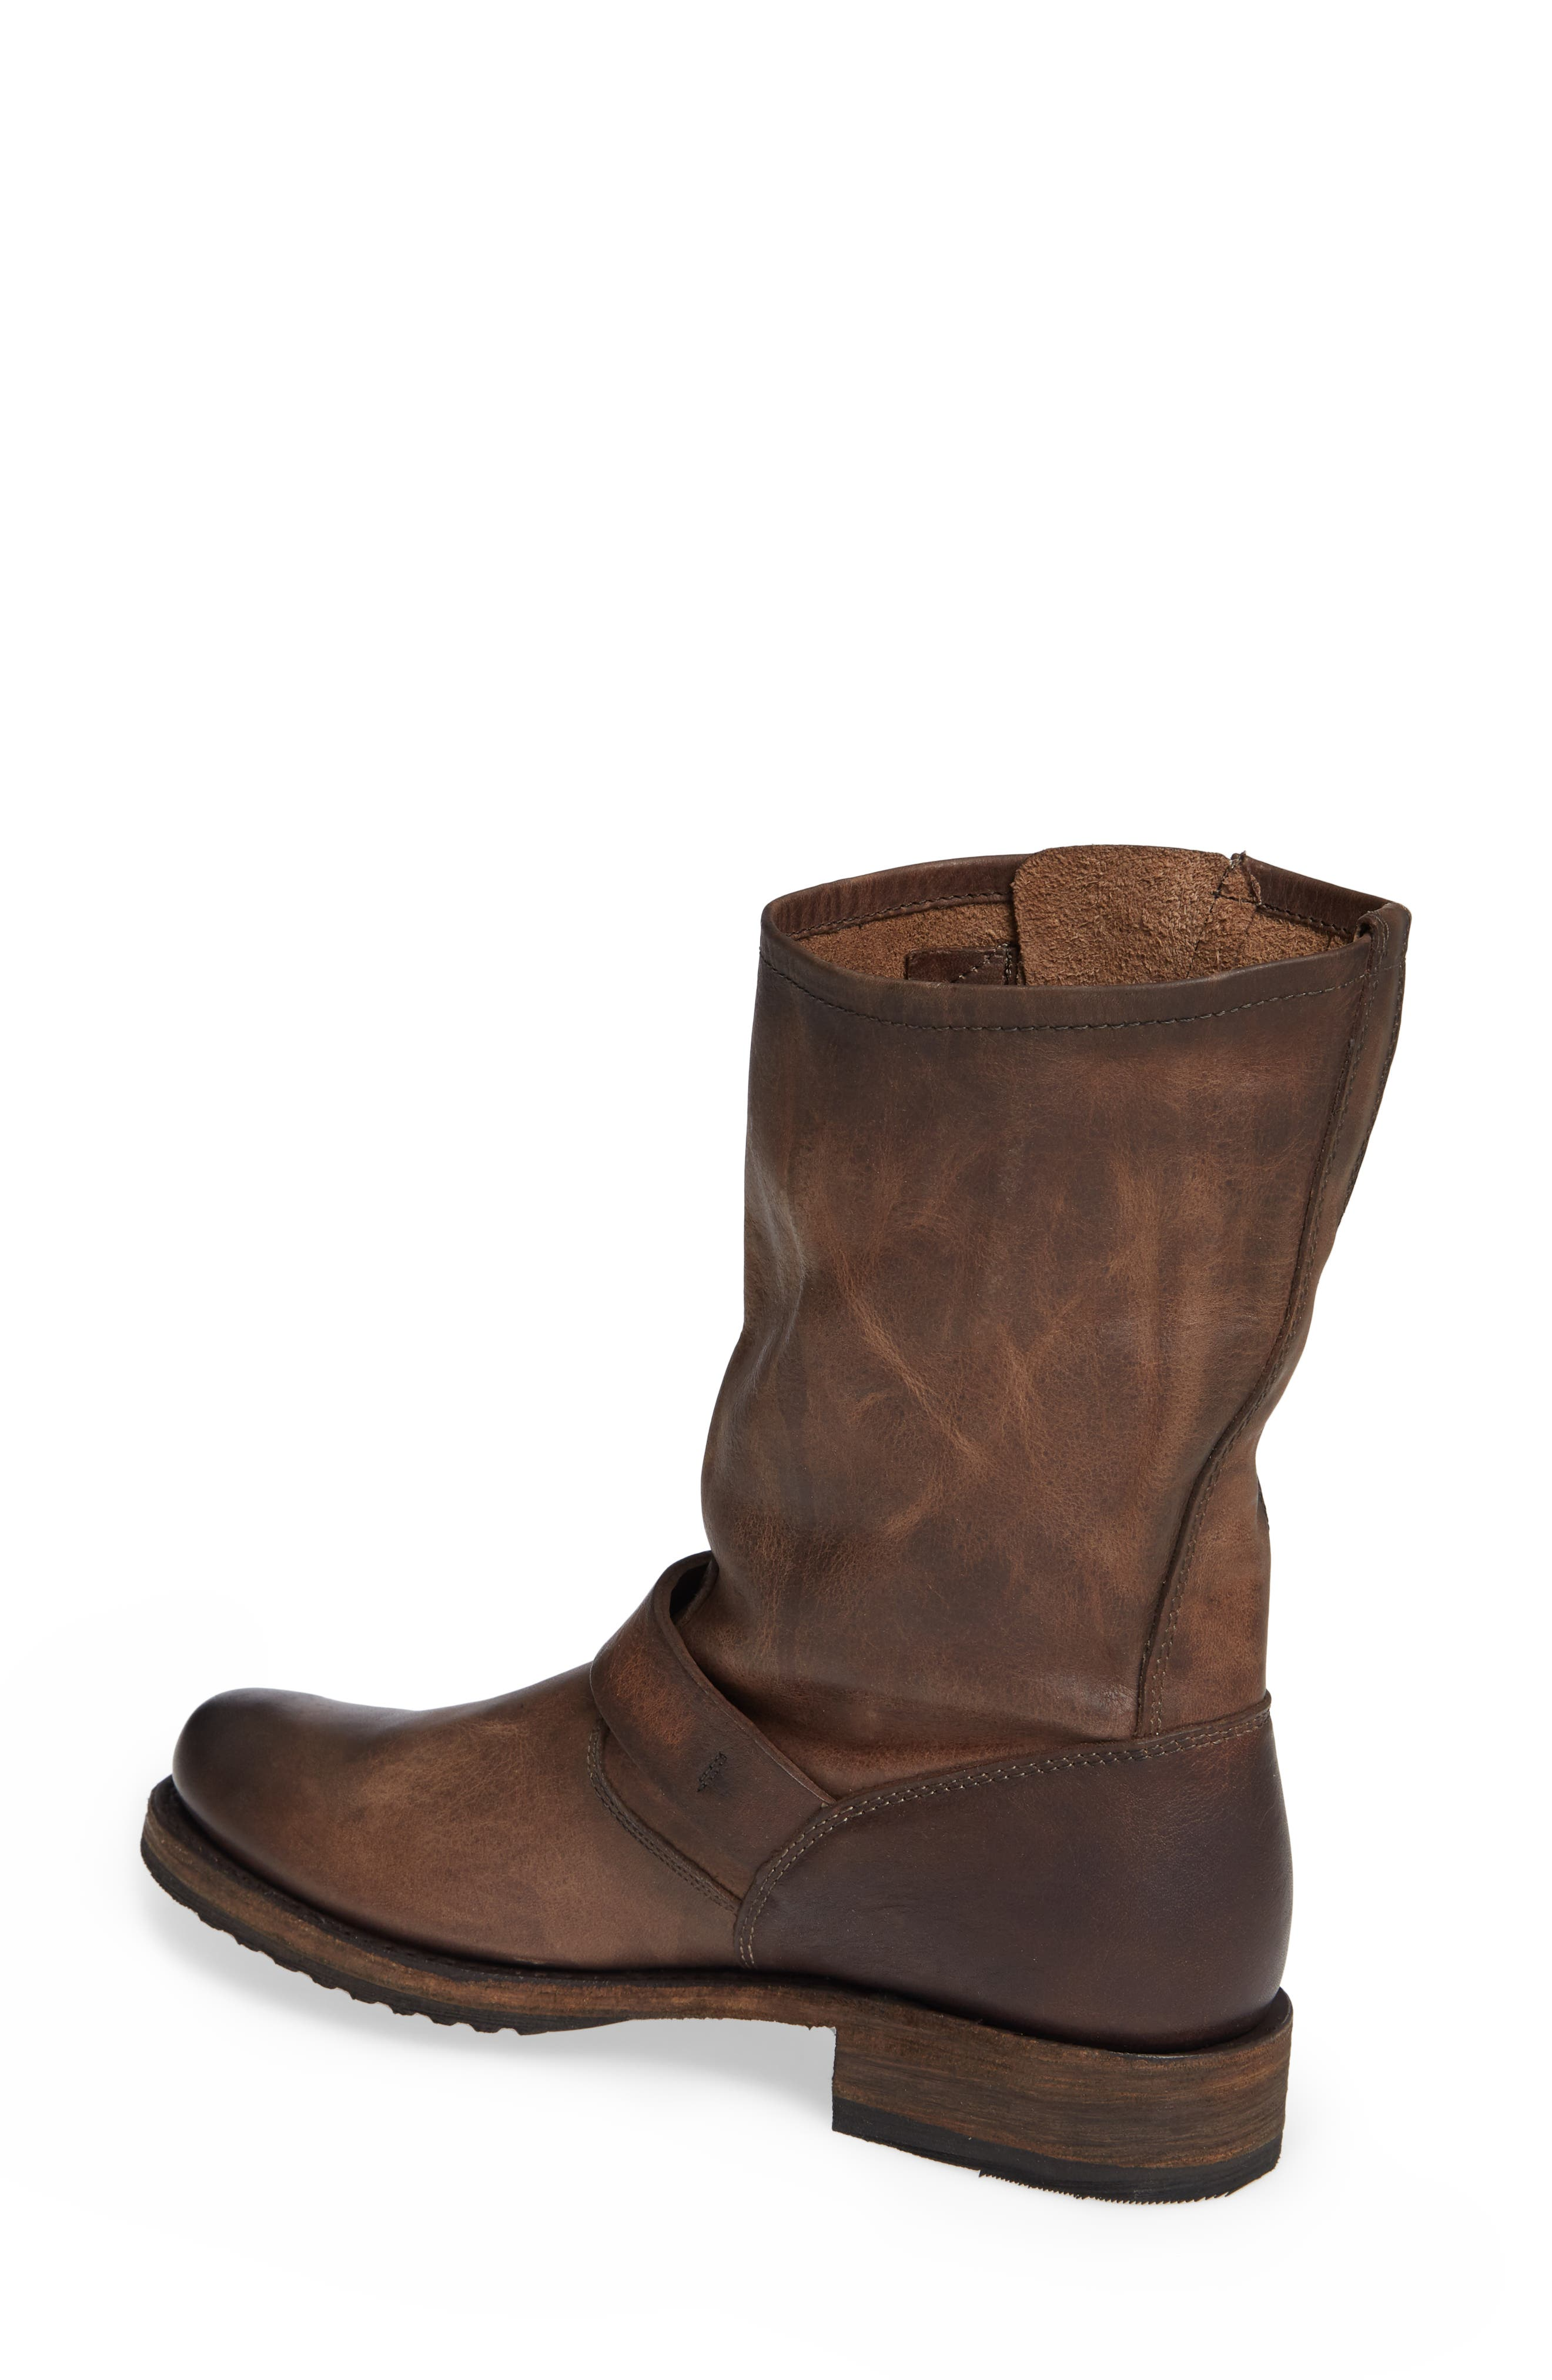 'Veronica' Short Boot,                             Alternate thumbnail 2, color,                             BROWN LEATHER